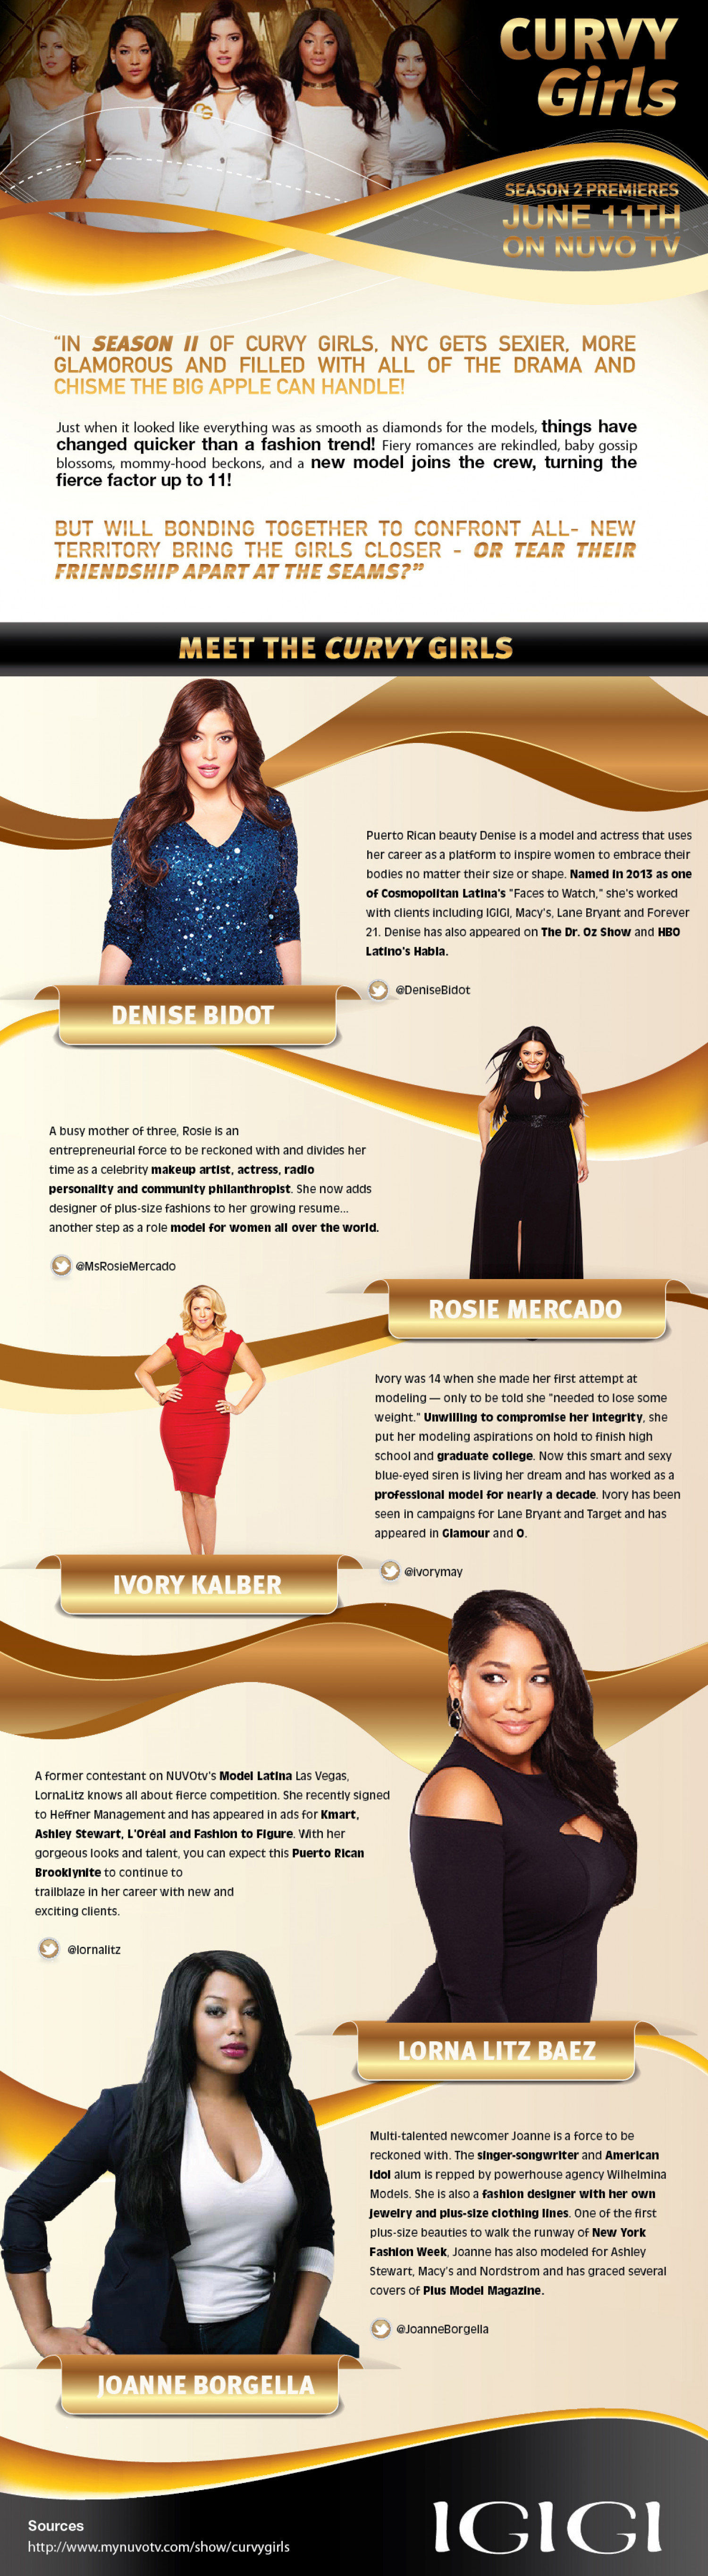 Curvy Girls Infographic